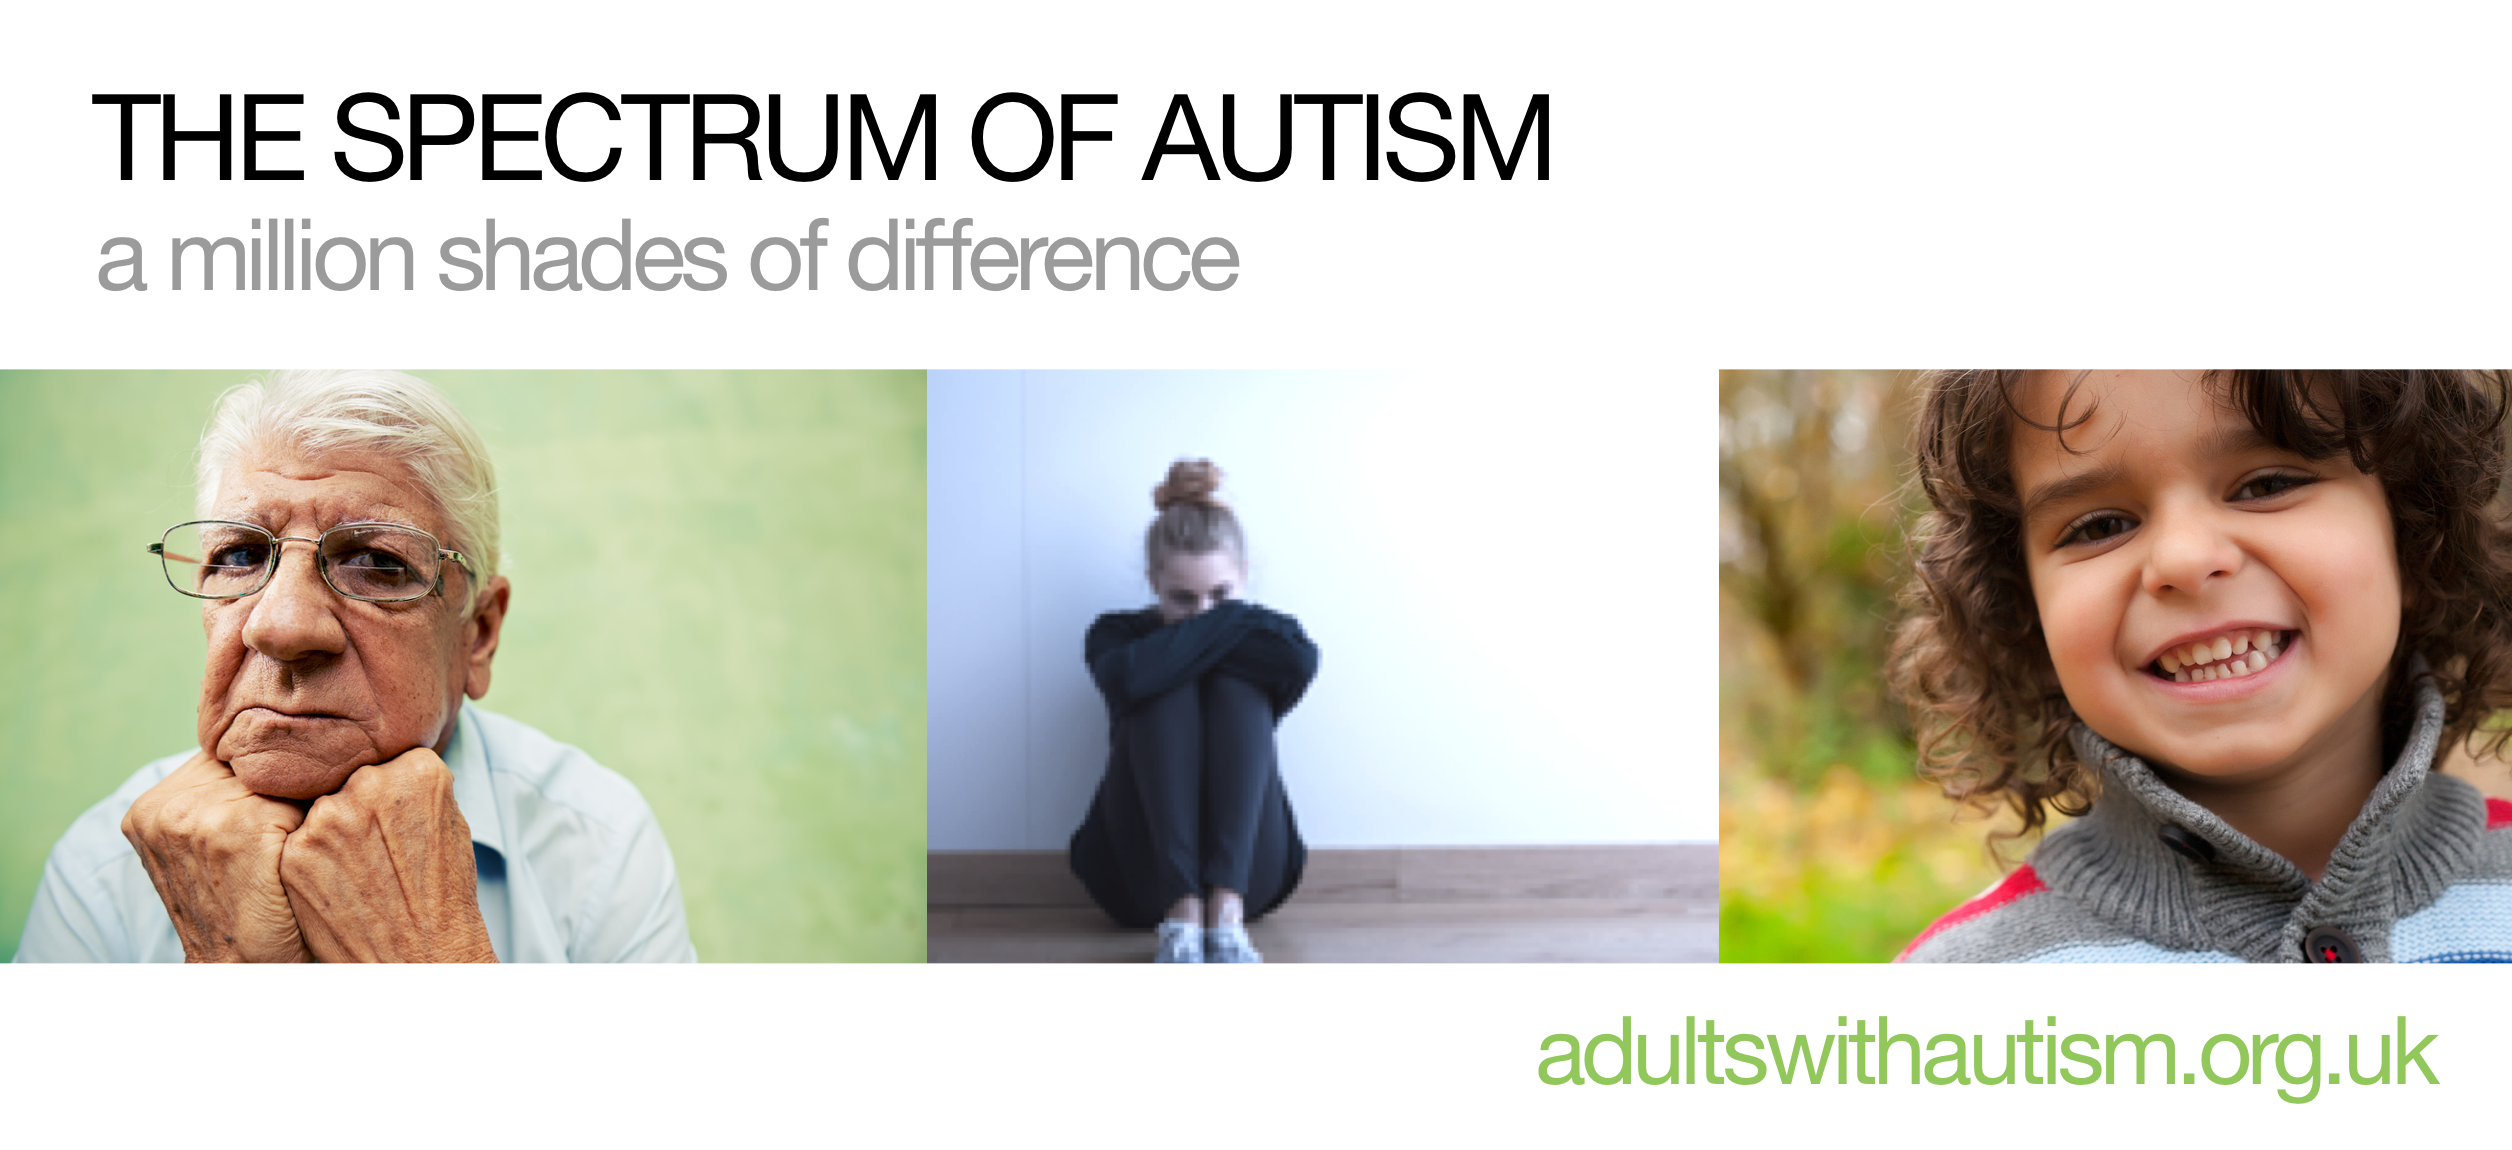 https://adultswithautism.org.uk/autism-mental-health-conditions-the-extra-cost-of-insurance/